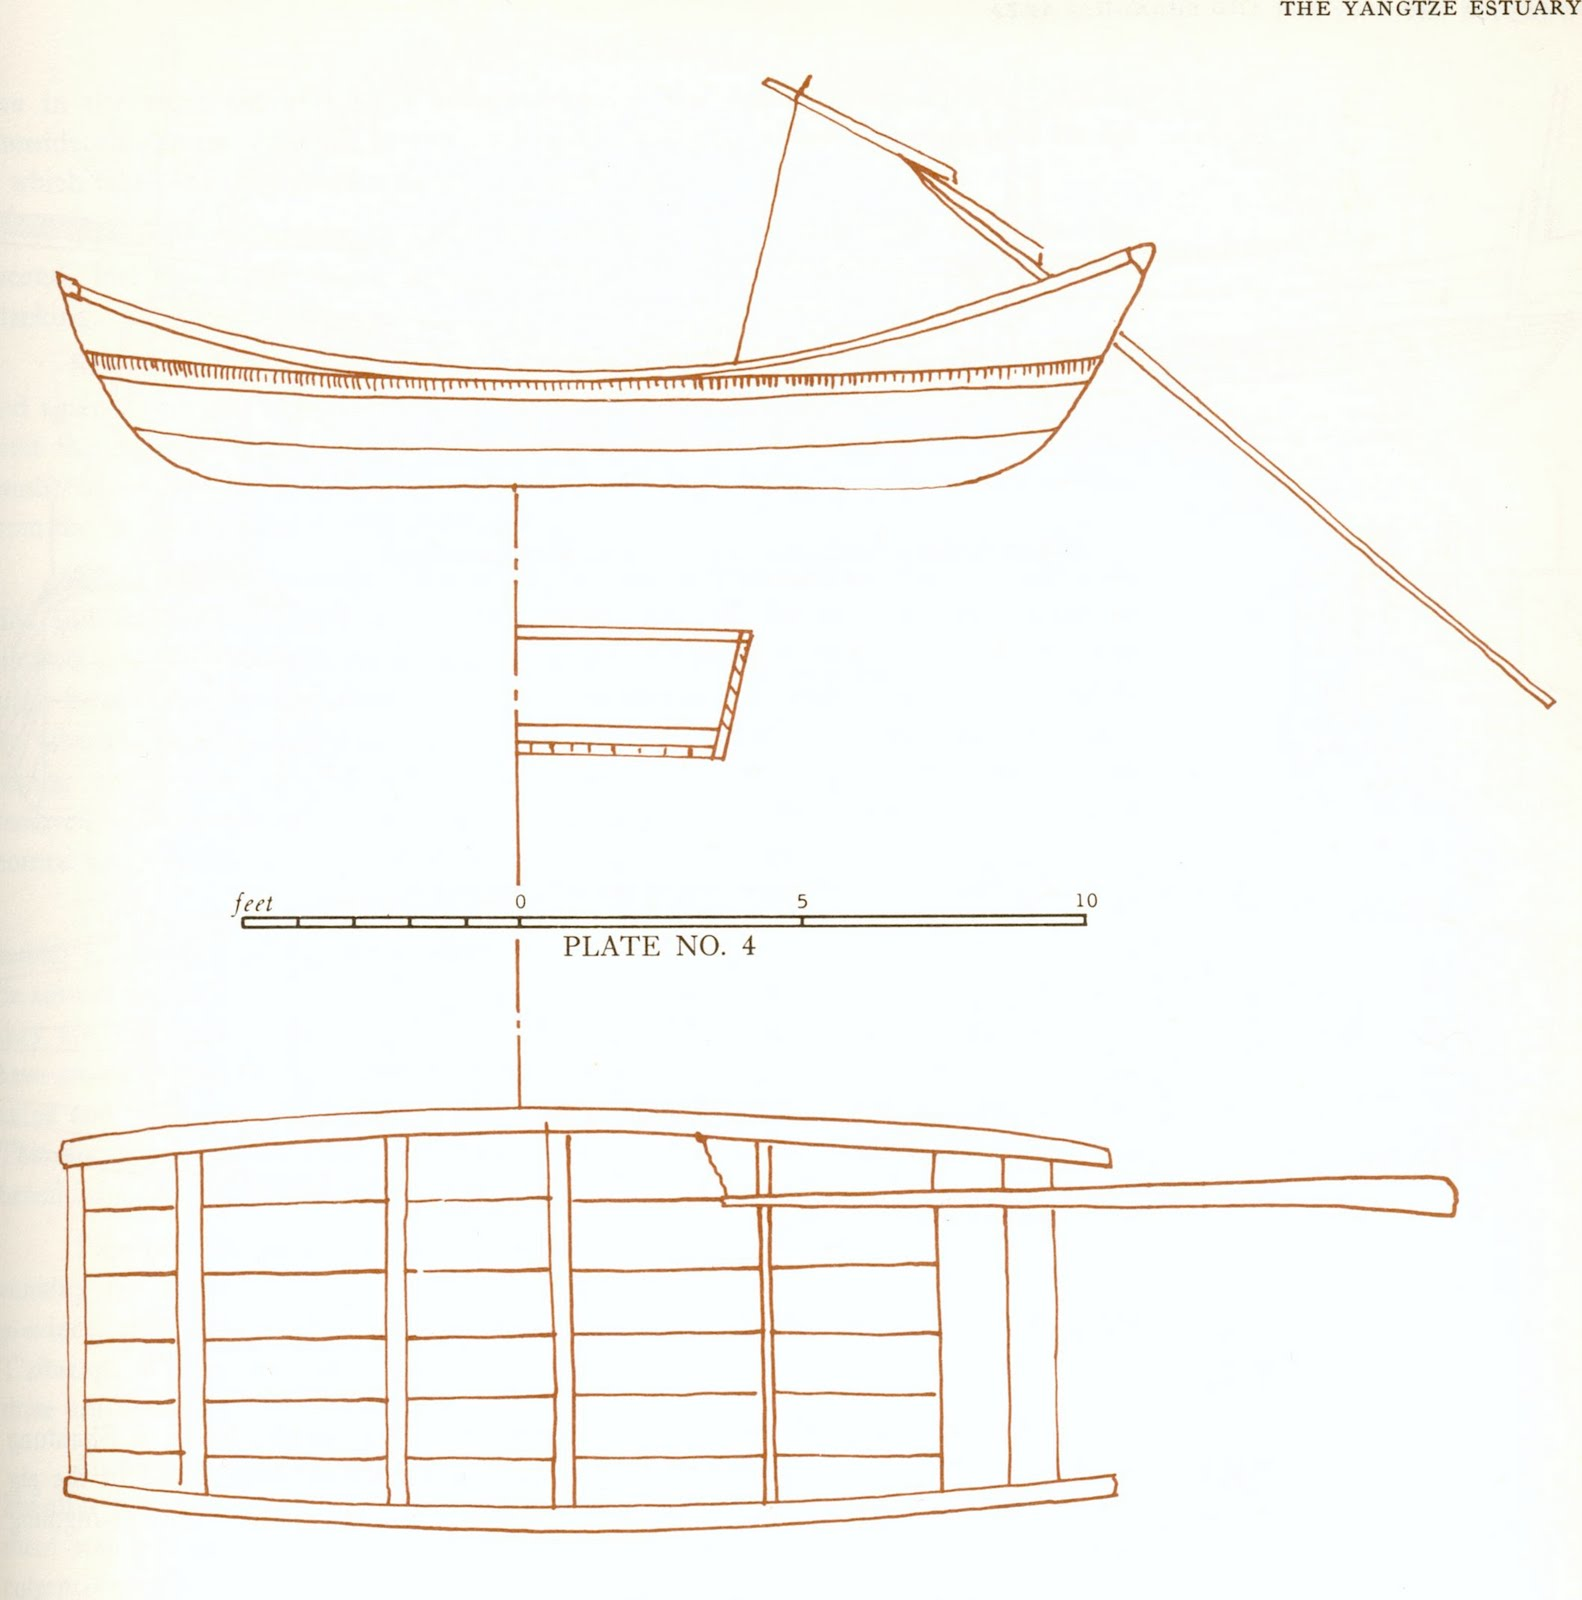 Push+Boat+Plans Push Boat Plans http://indigenousboats.blogspot.com ...